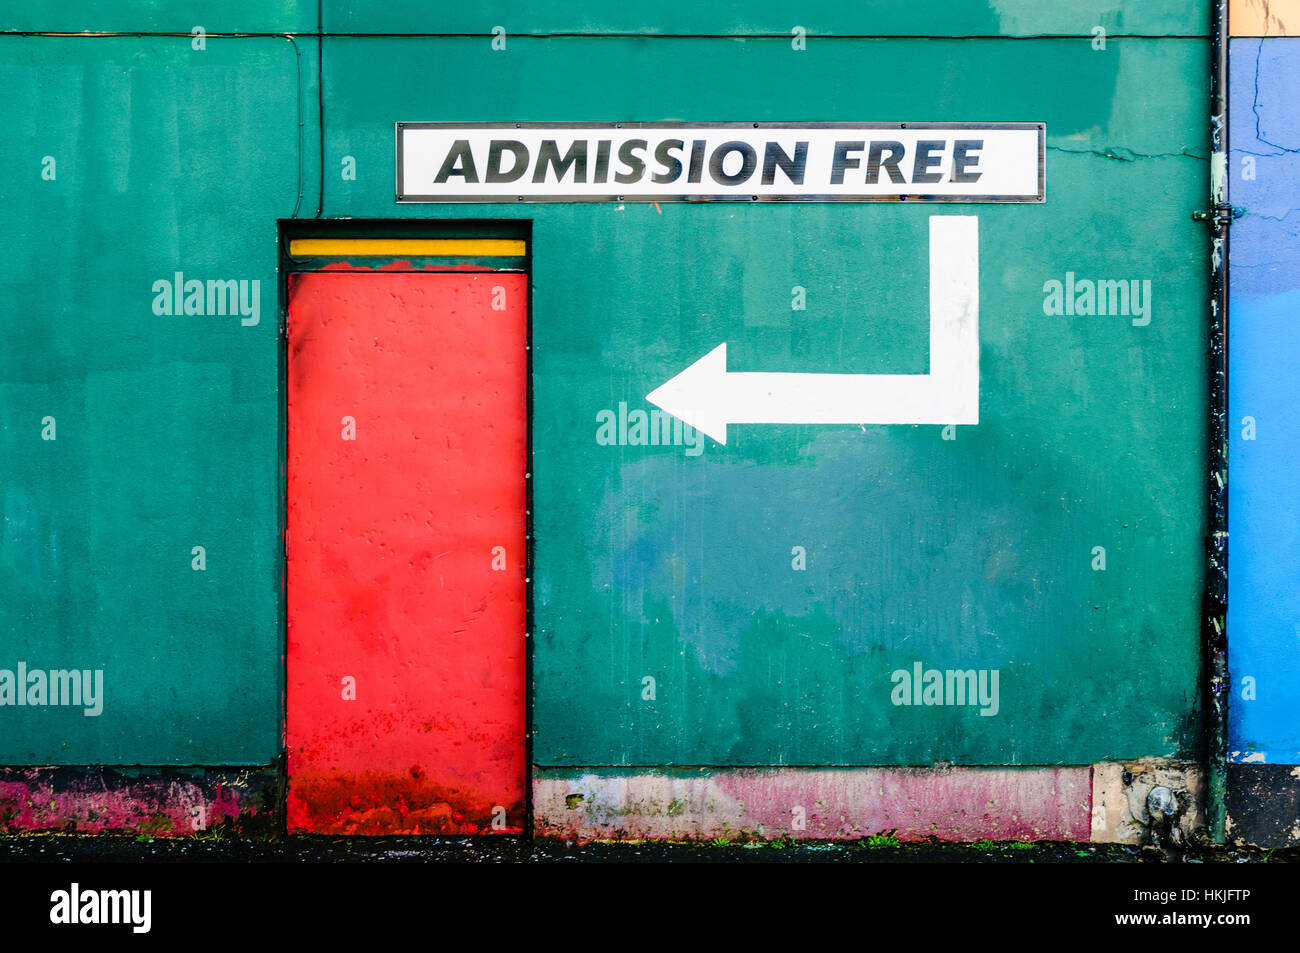 Red door on a green wall with a sign saying 'Admission Free' - Stock Image